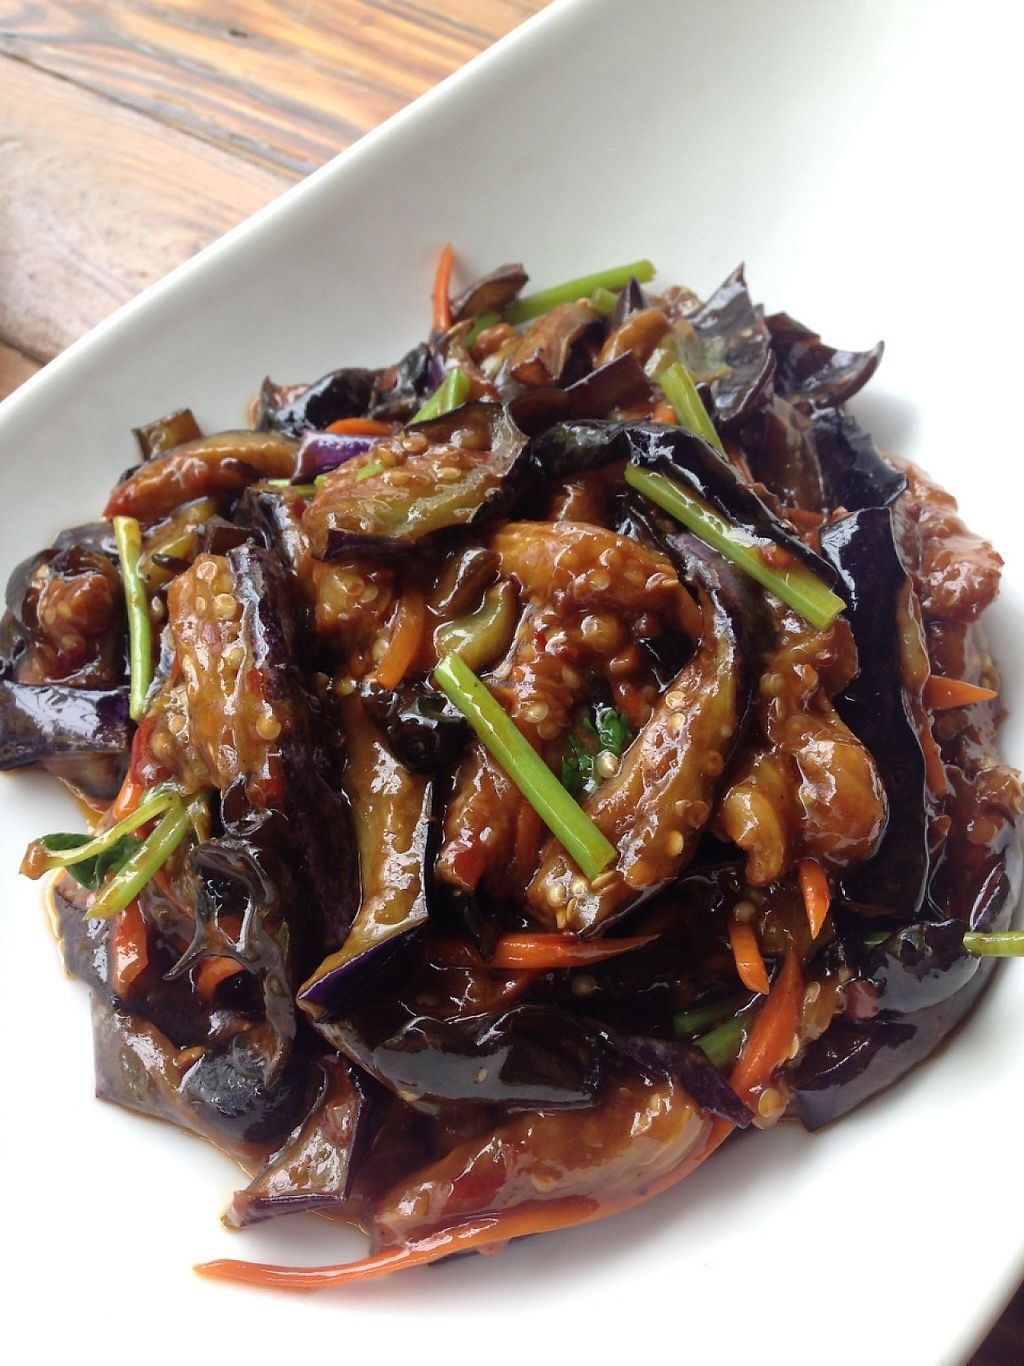 """Photo of Zhong Lian Vegetarian  by <a href=""""/members/profile/Stevie"""">Stevie</a> <br/> July 1, 2016  - <a href='/contact/abuse/image/75840/255918'>Report</a>"""